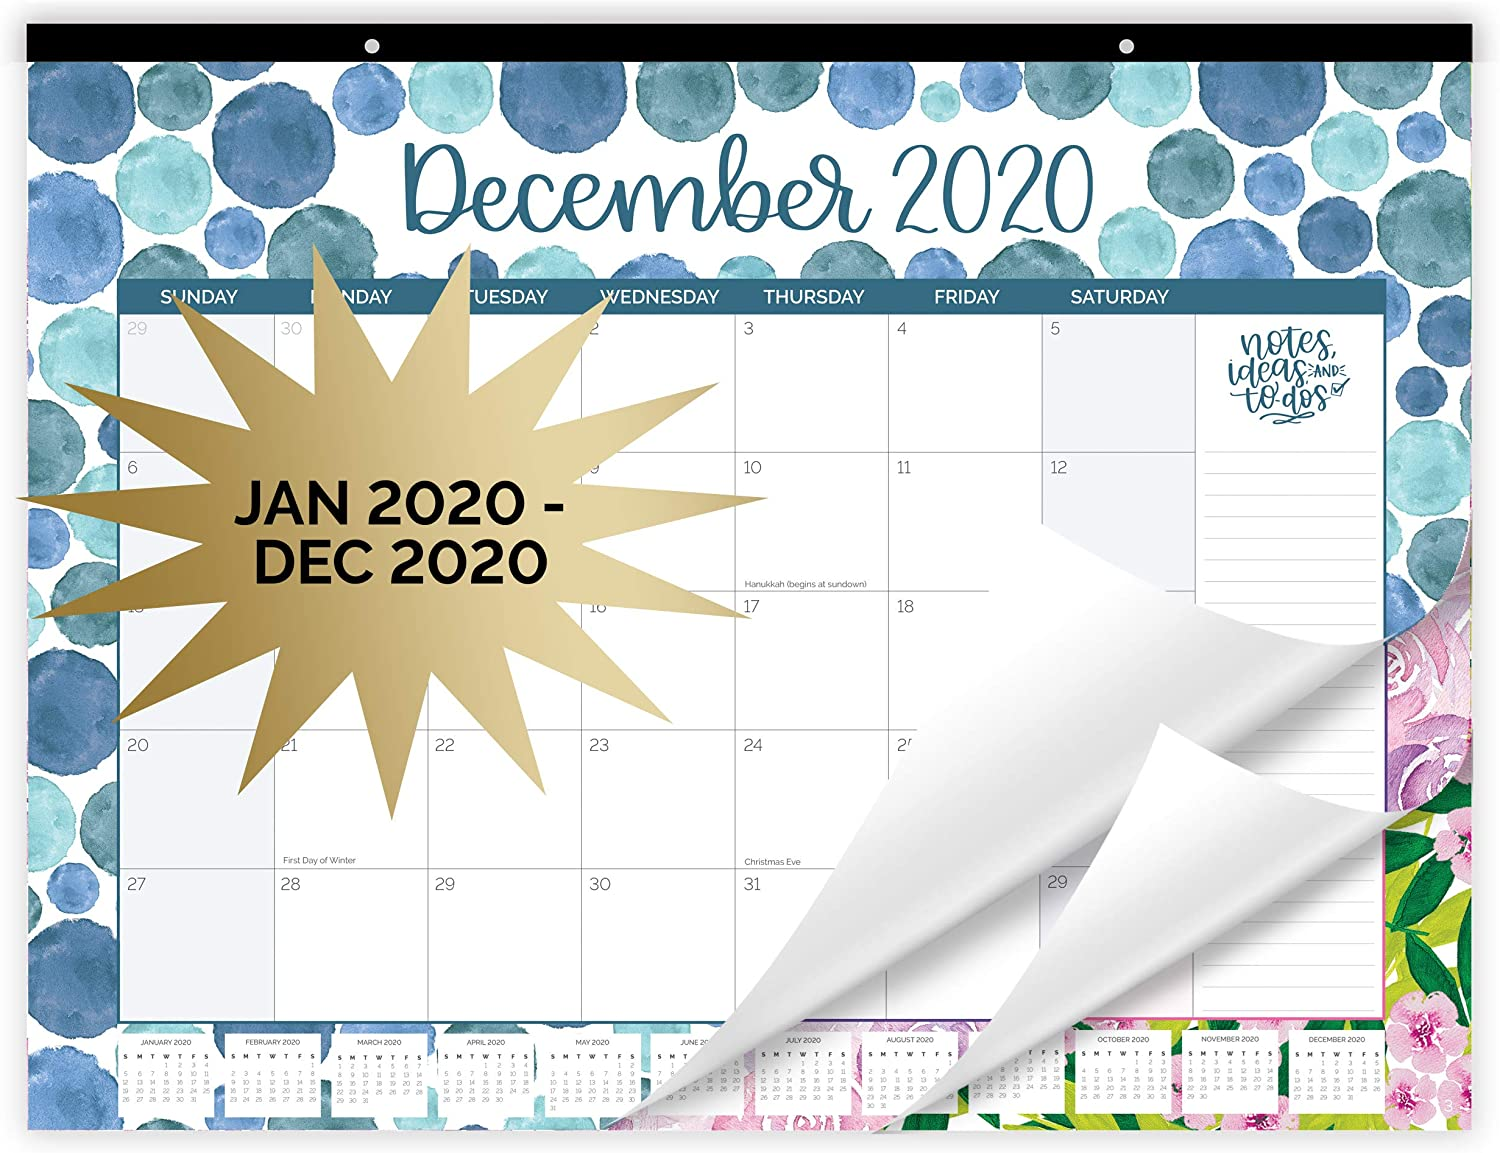 "bloom daily planners 2020 Desk/Wall Monthly Calendar Pad (January 2020 - December 2020) - Large 21"" x 16"" Hanging or Desktop Blotter - Watercolor"